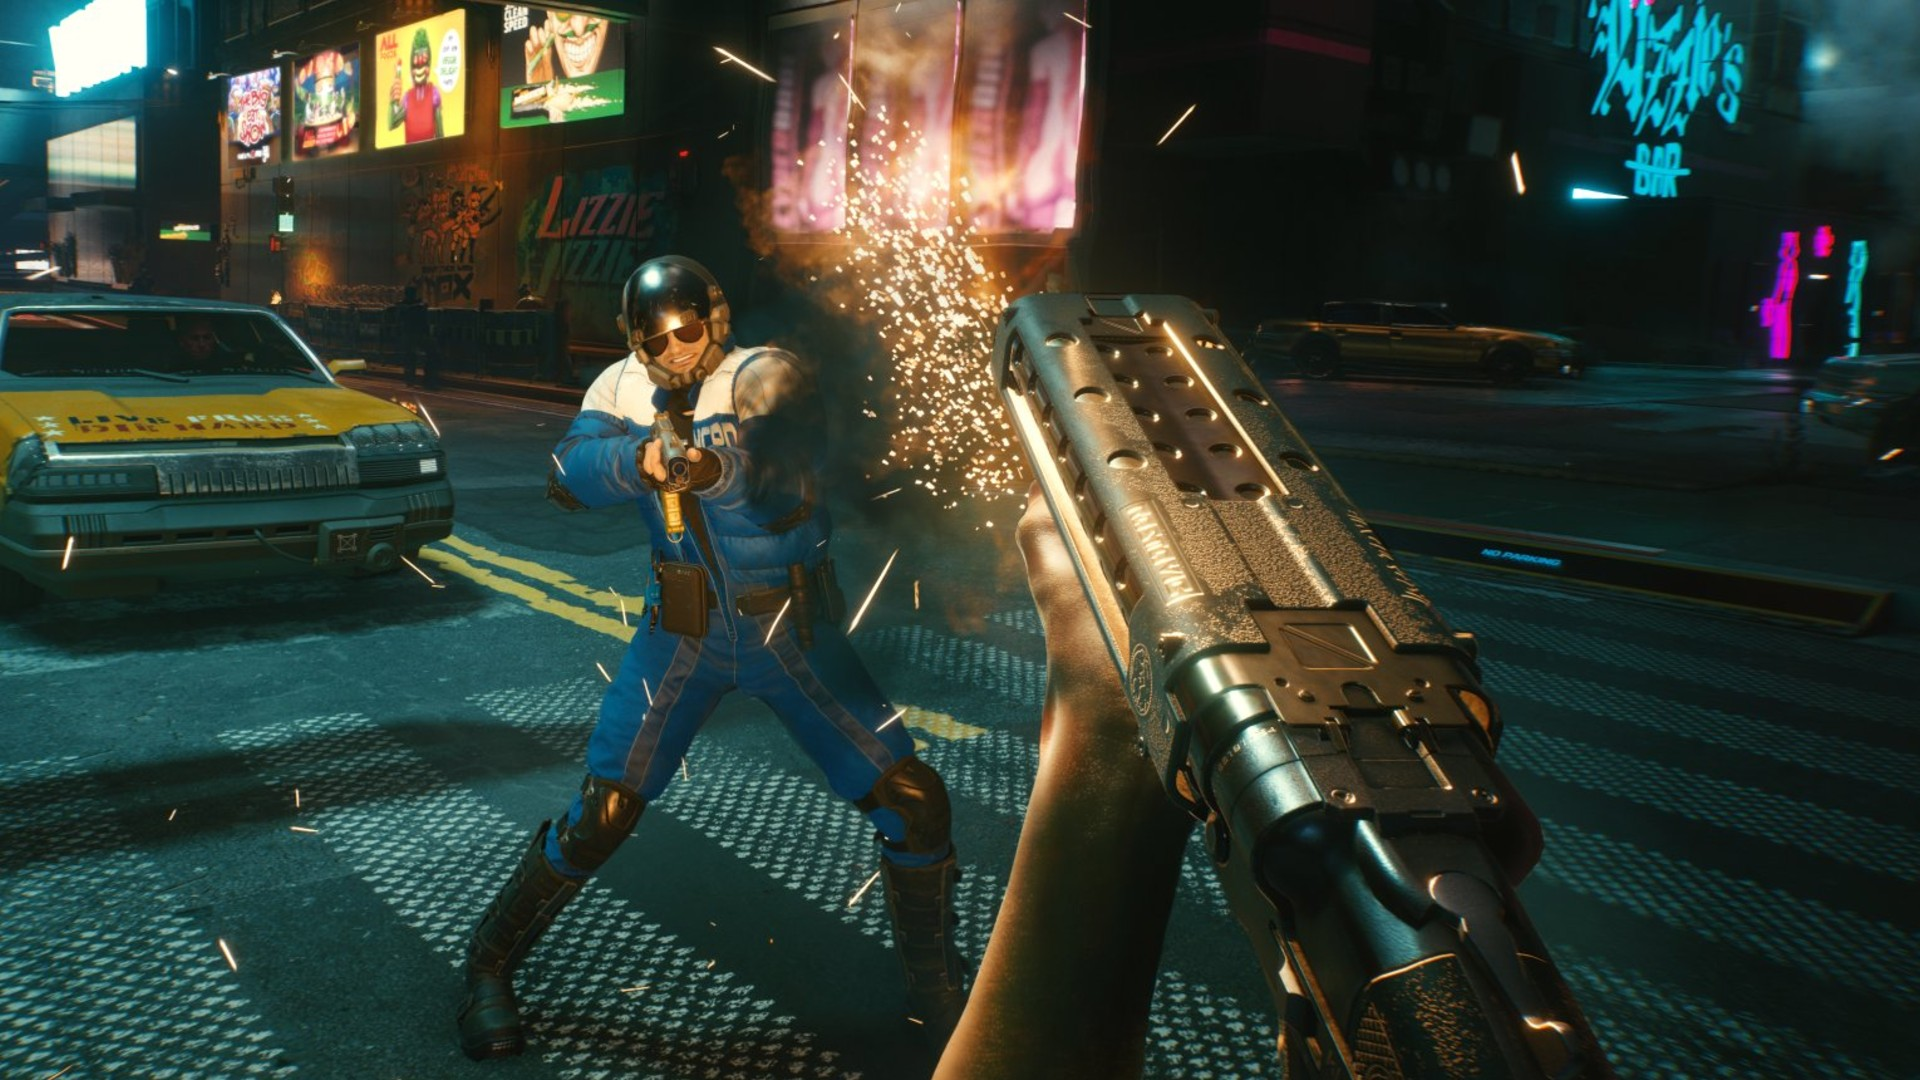 Cyberpunk 2077 will mark a new era of electronic games. (Image: CD Projekt RED)